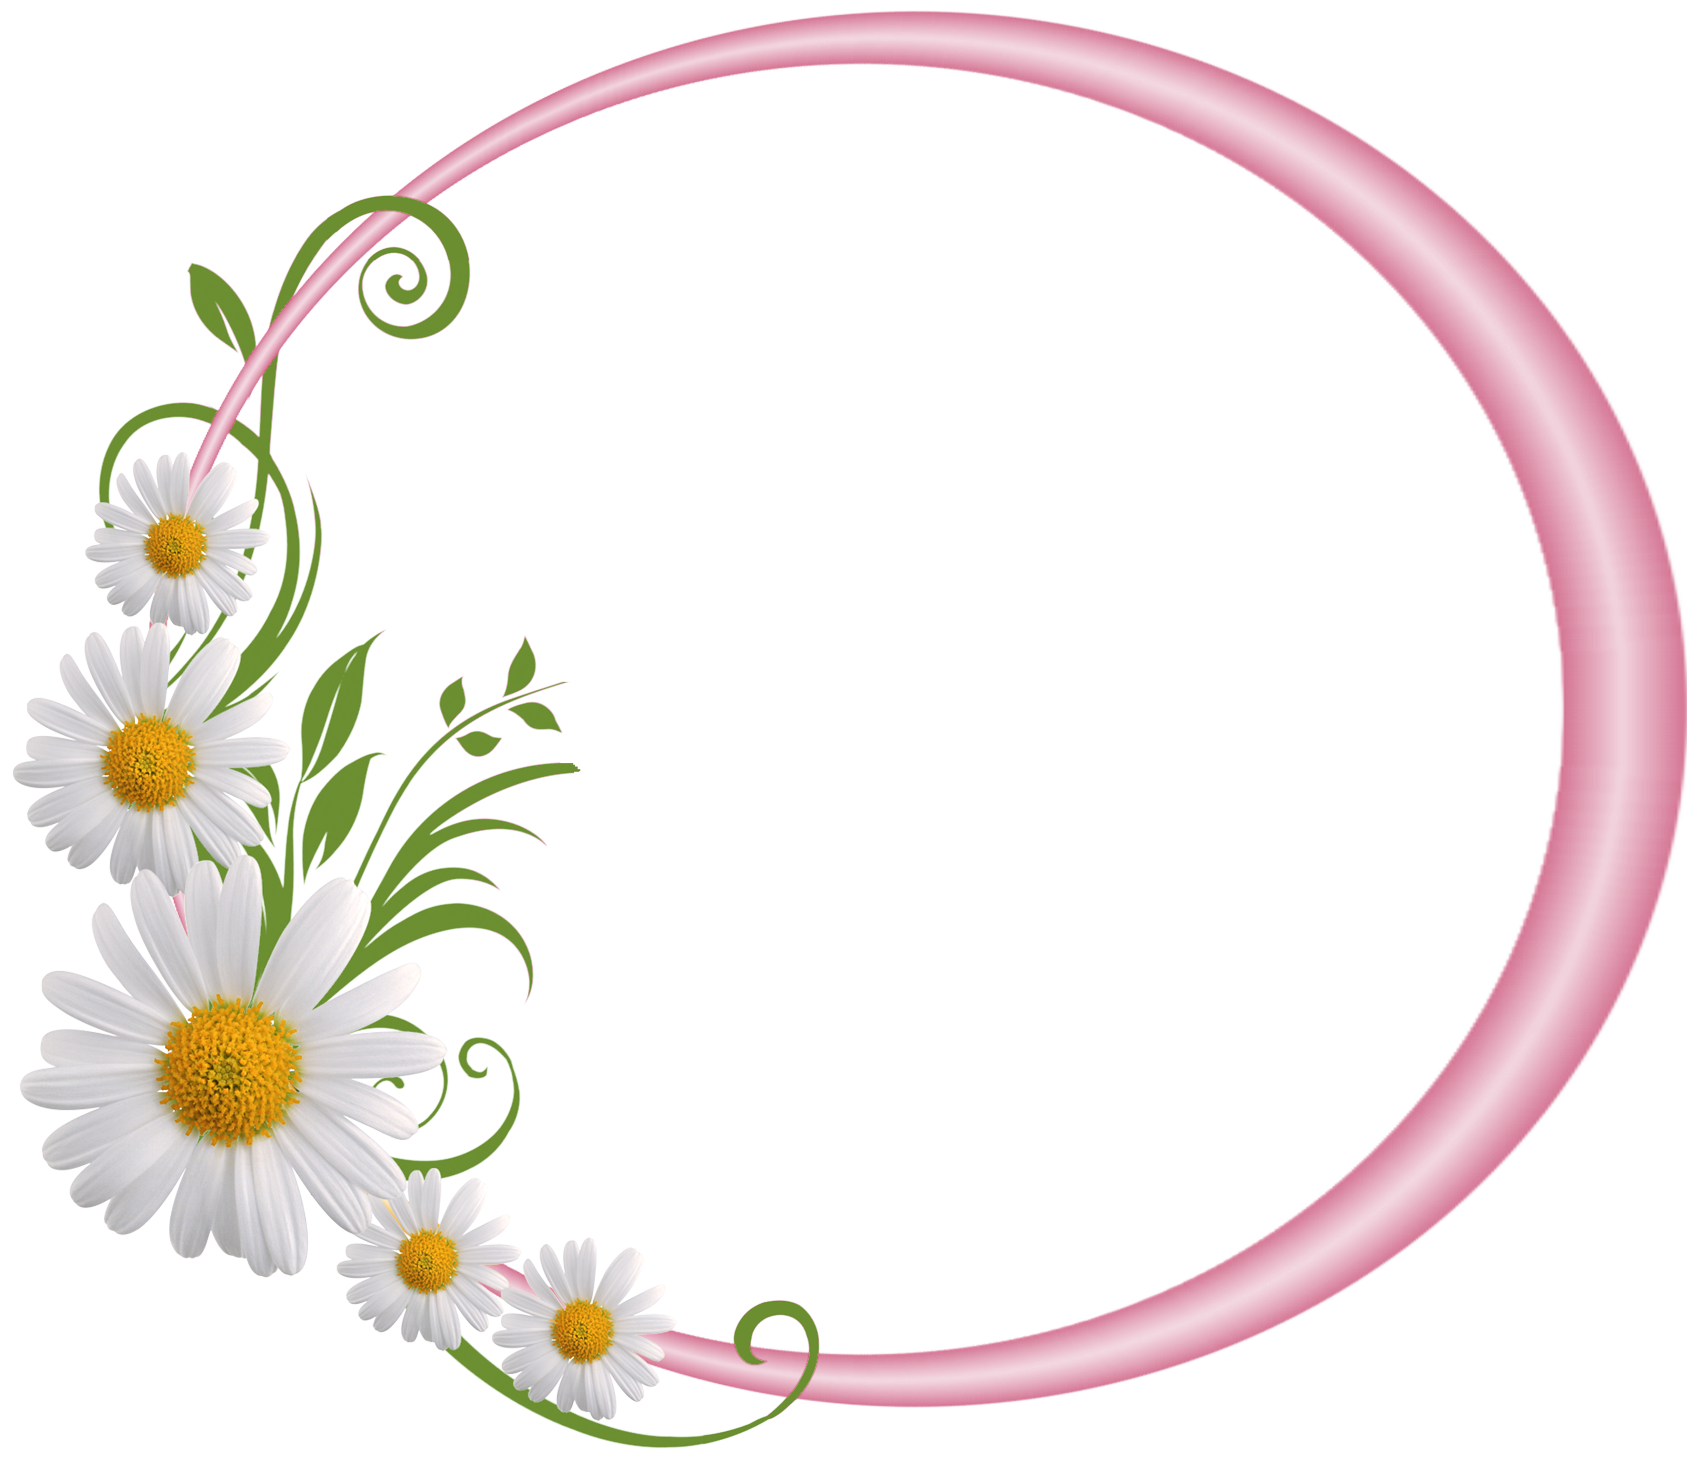 pink round frame with daisies